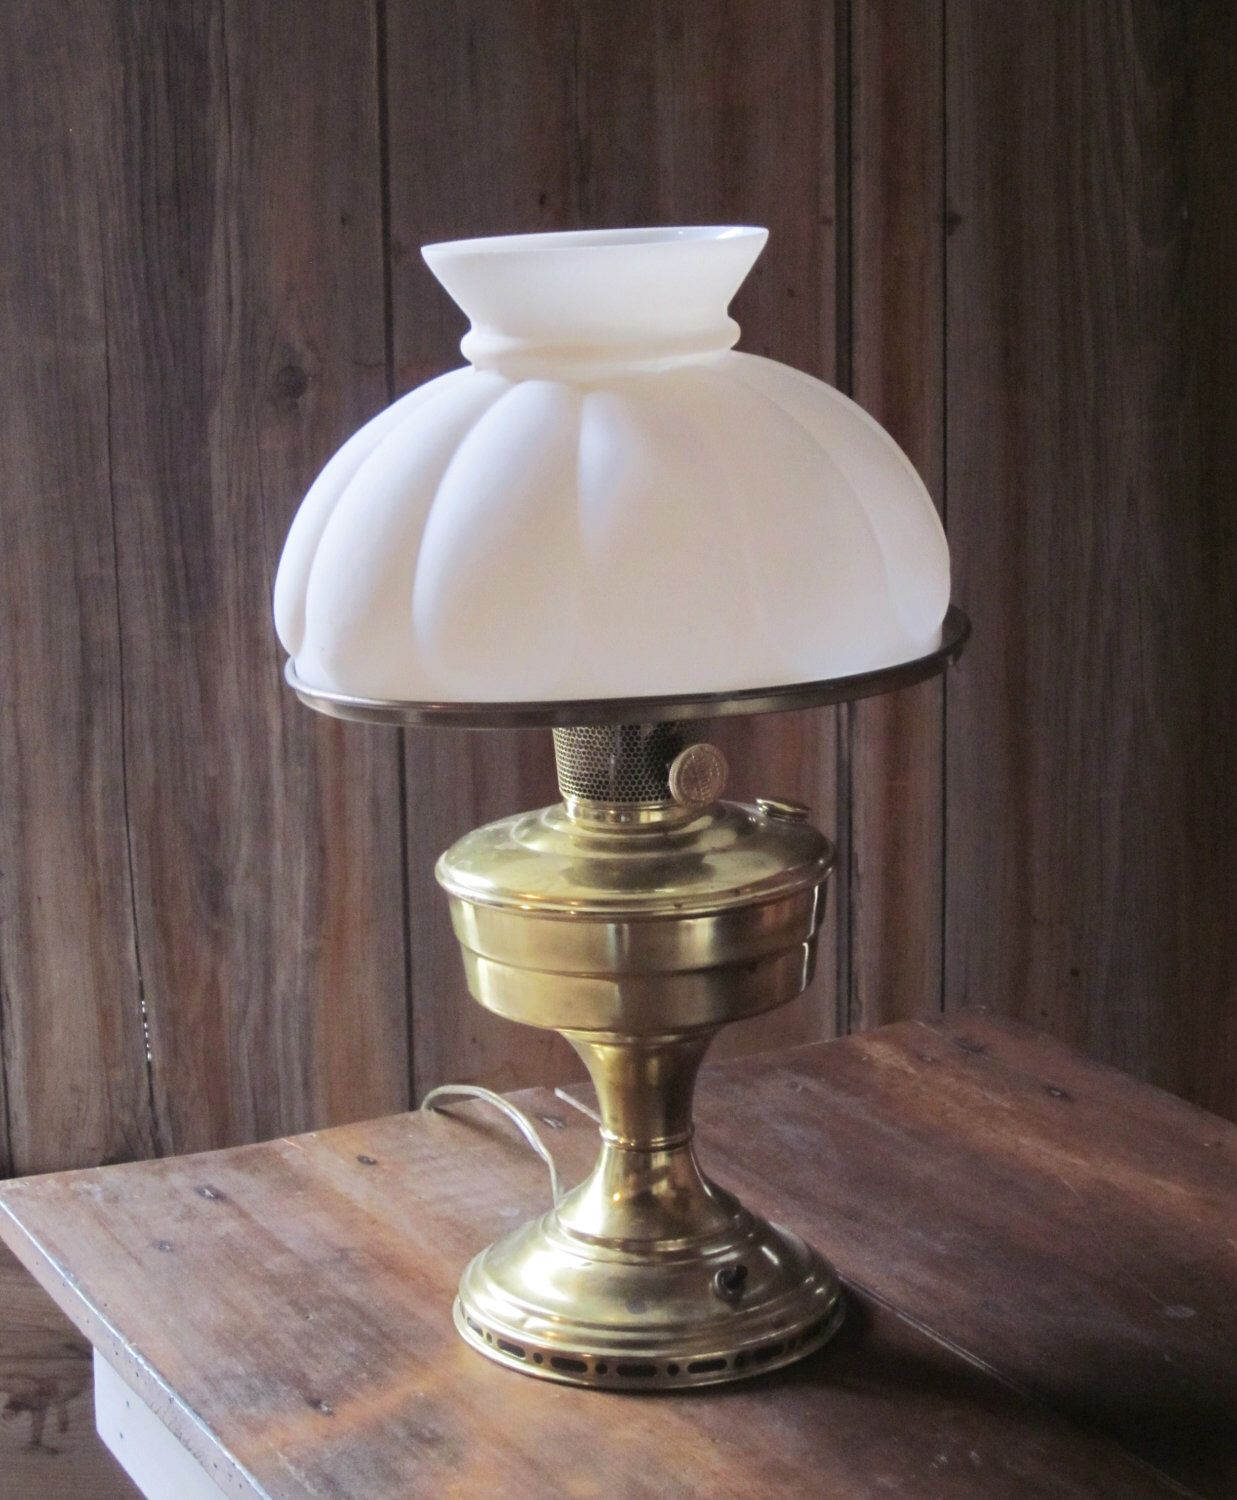 Brass aladdin lamp antique electrified white milk glass shade by brass aladdin lamp antique electrified white milk glass shade by gardenbarn on etsy https aloadofball Image collections